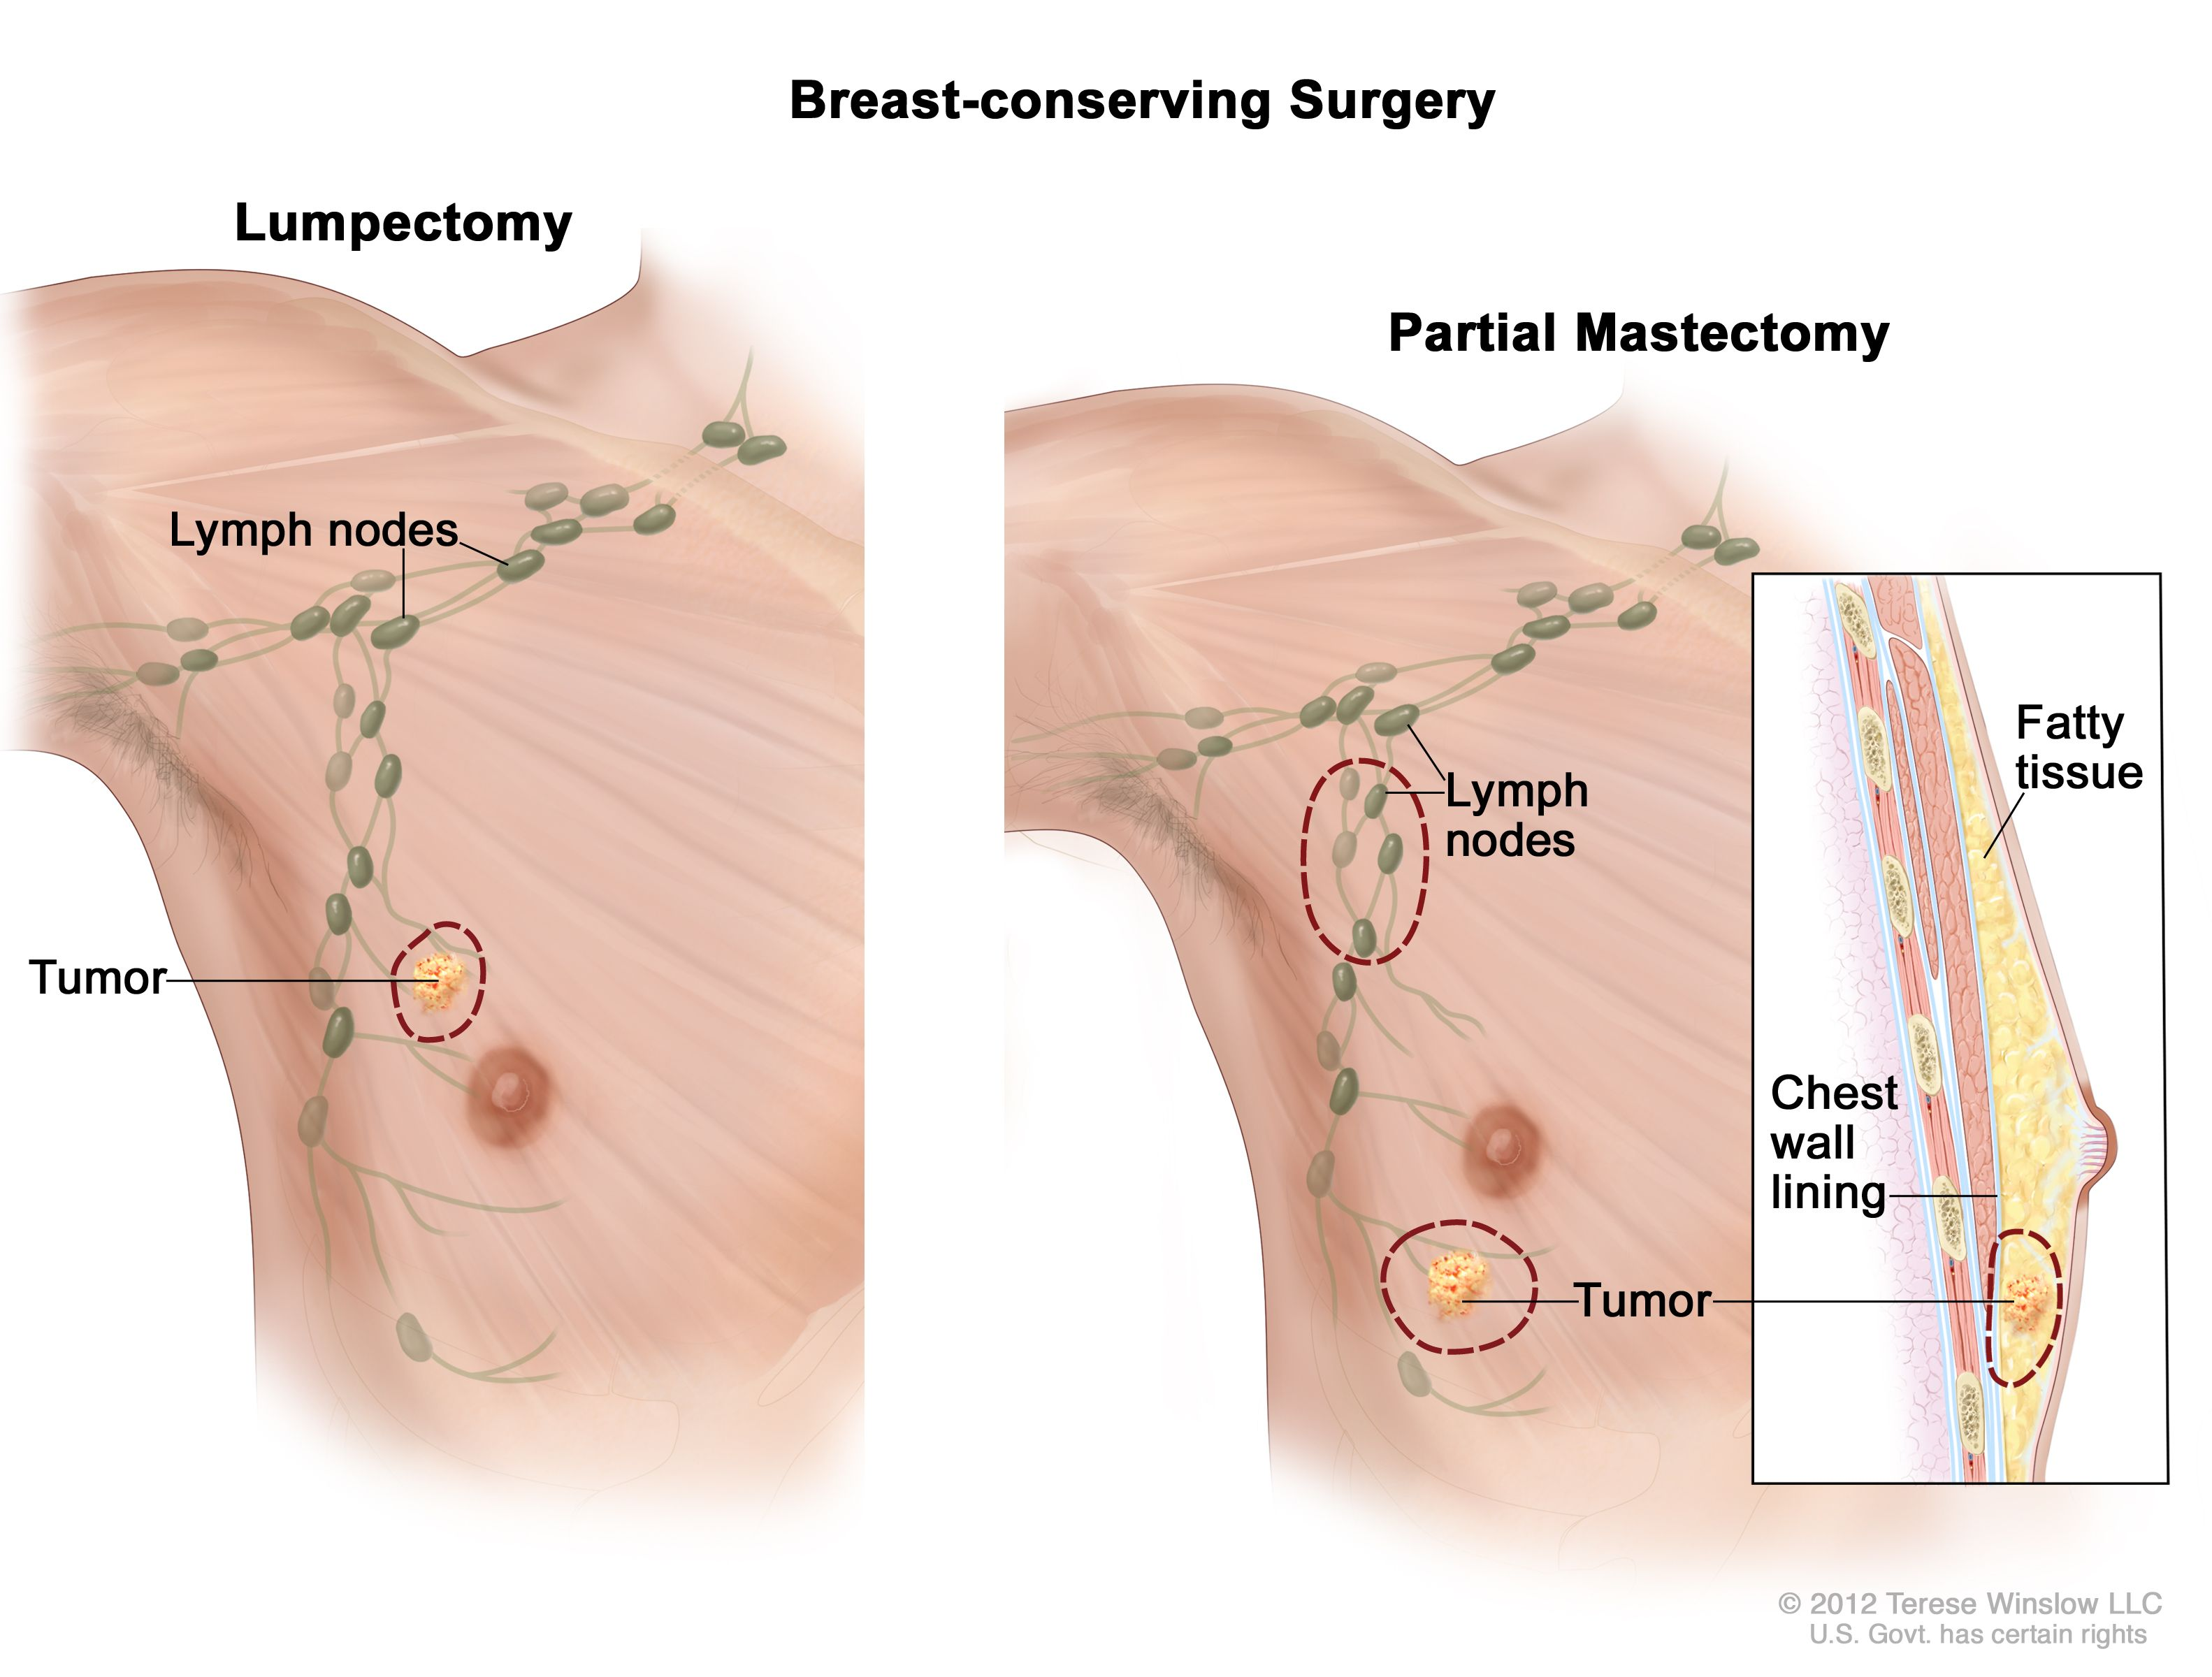 Male Breast Cancer Awareness Symptoms Breast Lymph Nodes Picture Of Breast Cancer Cleveland Oh University Hospitals